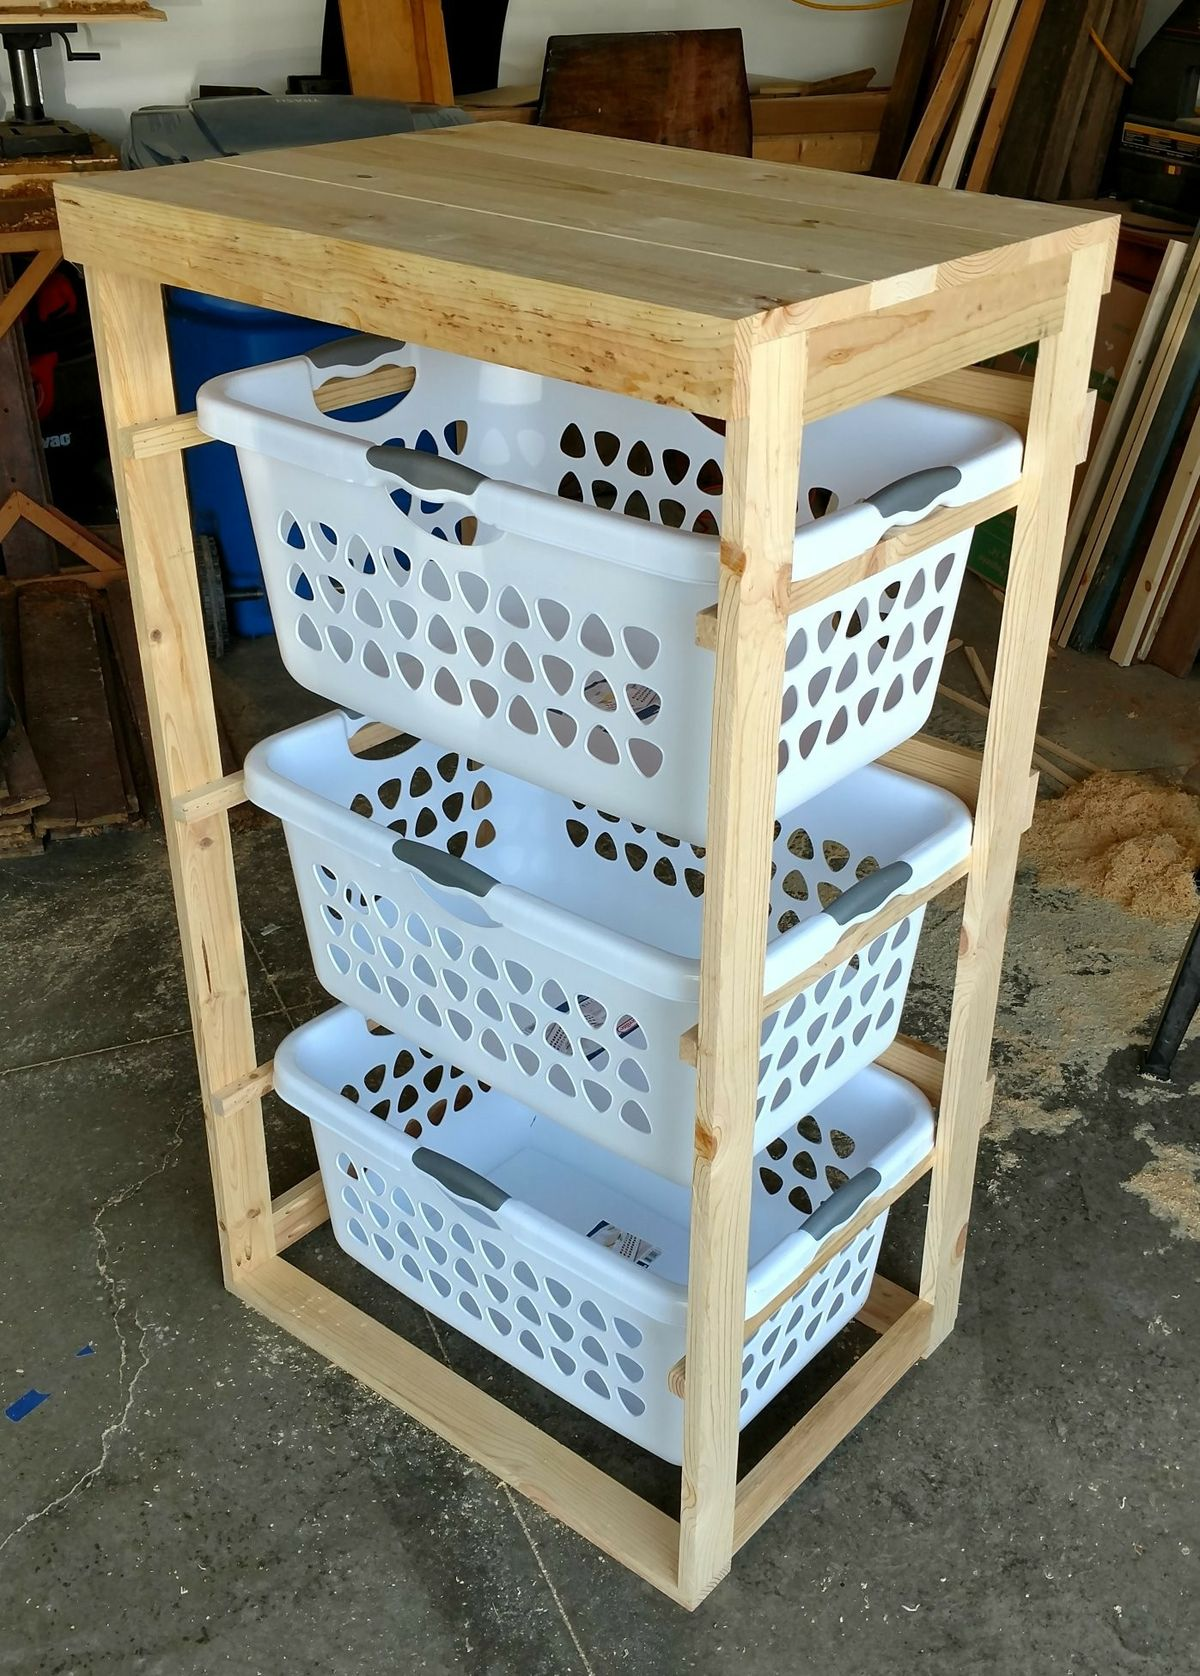 20 tier laundry rack. Total cost to build including 20 laundry baskets ...